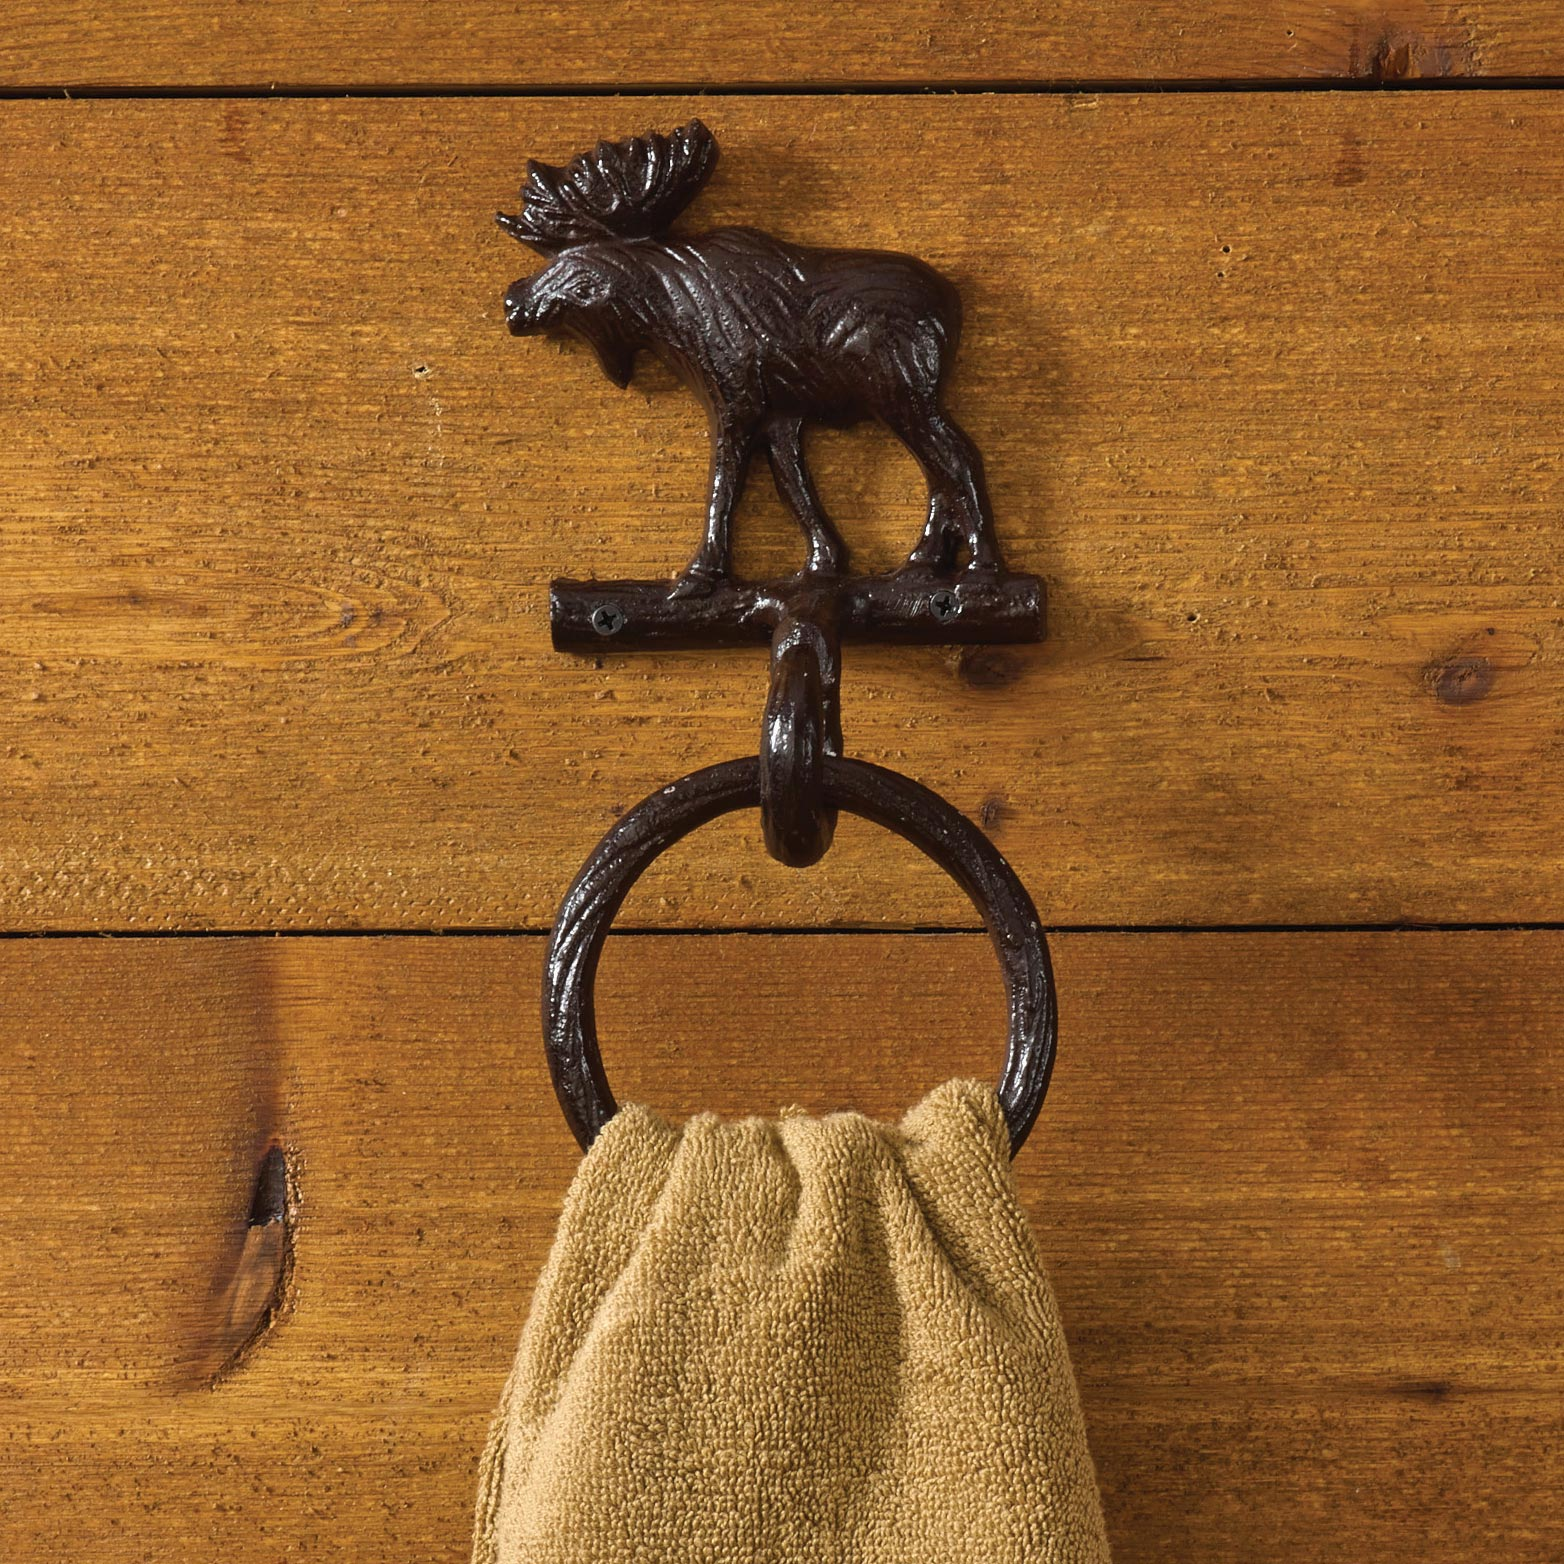 PKD-22-457M-Cast-Moose-Towel-Ring-Hook-LRG